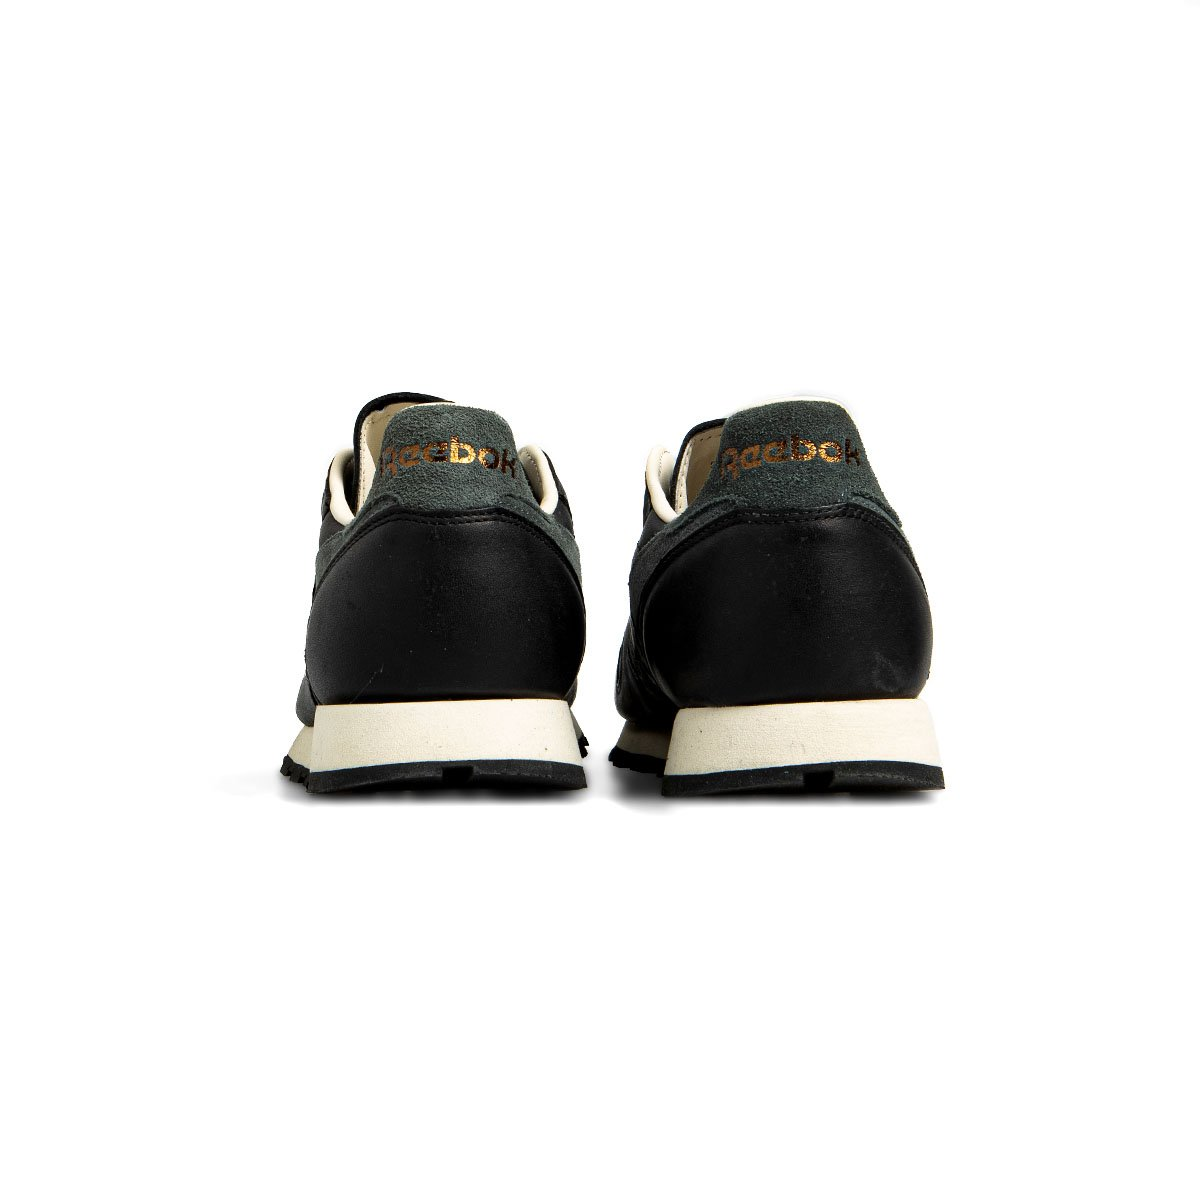 c1d122a3602 Sneakers buty Reebok Classic Leather LS black   burnt sienna   ashgrey  BS5079 ...